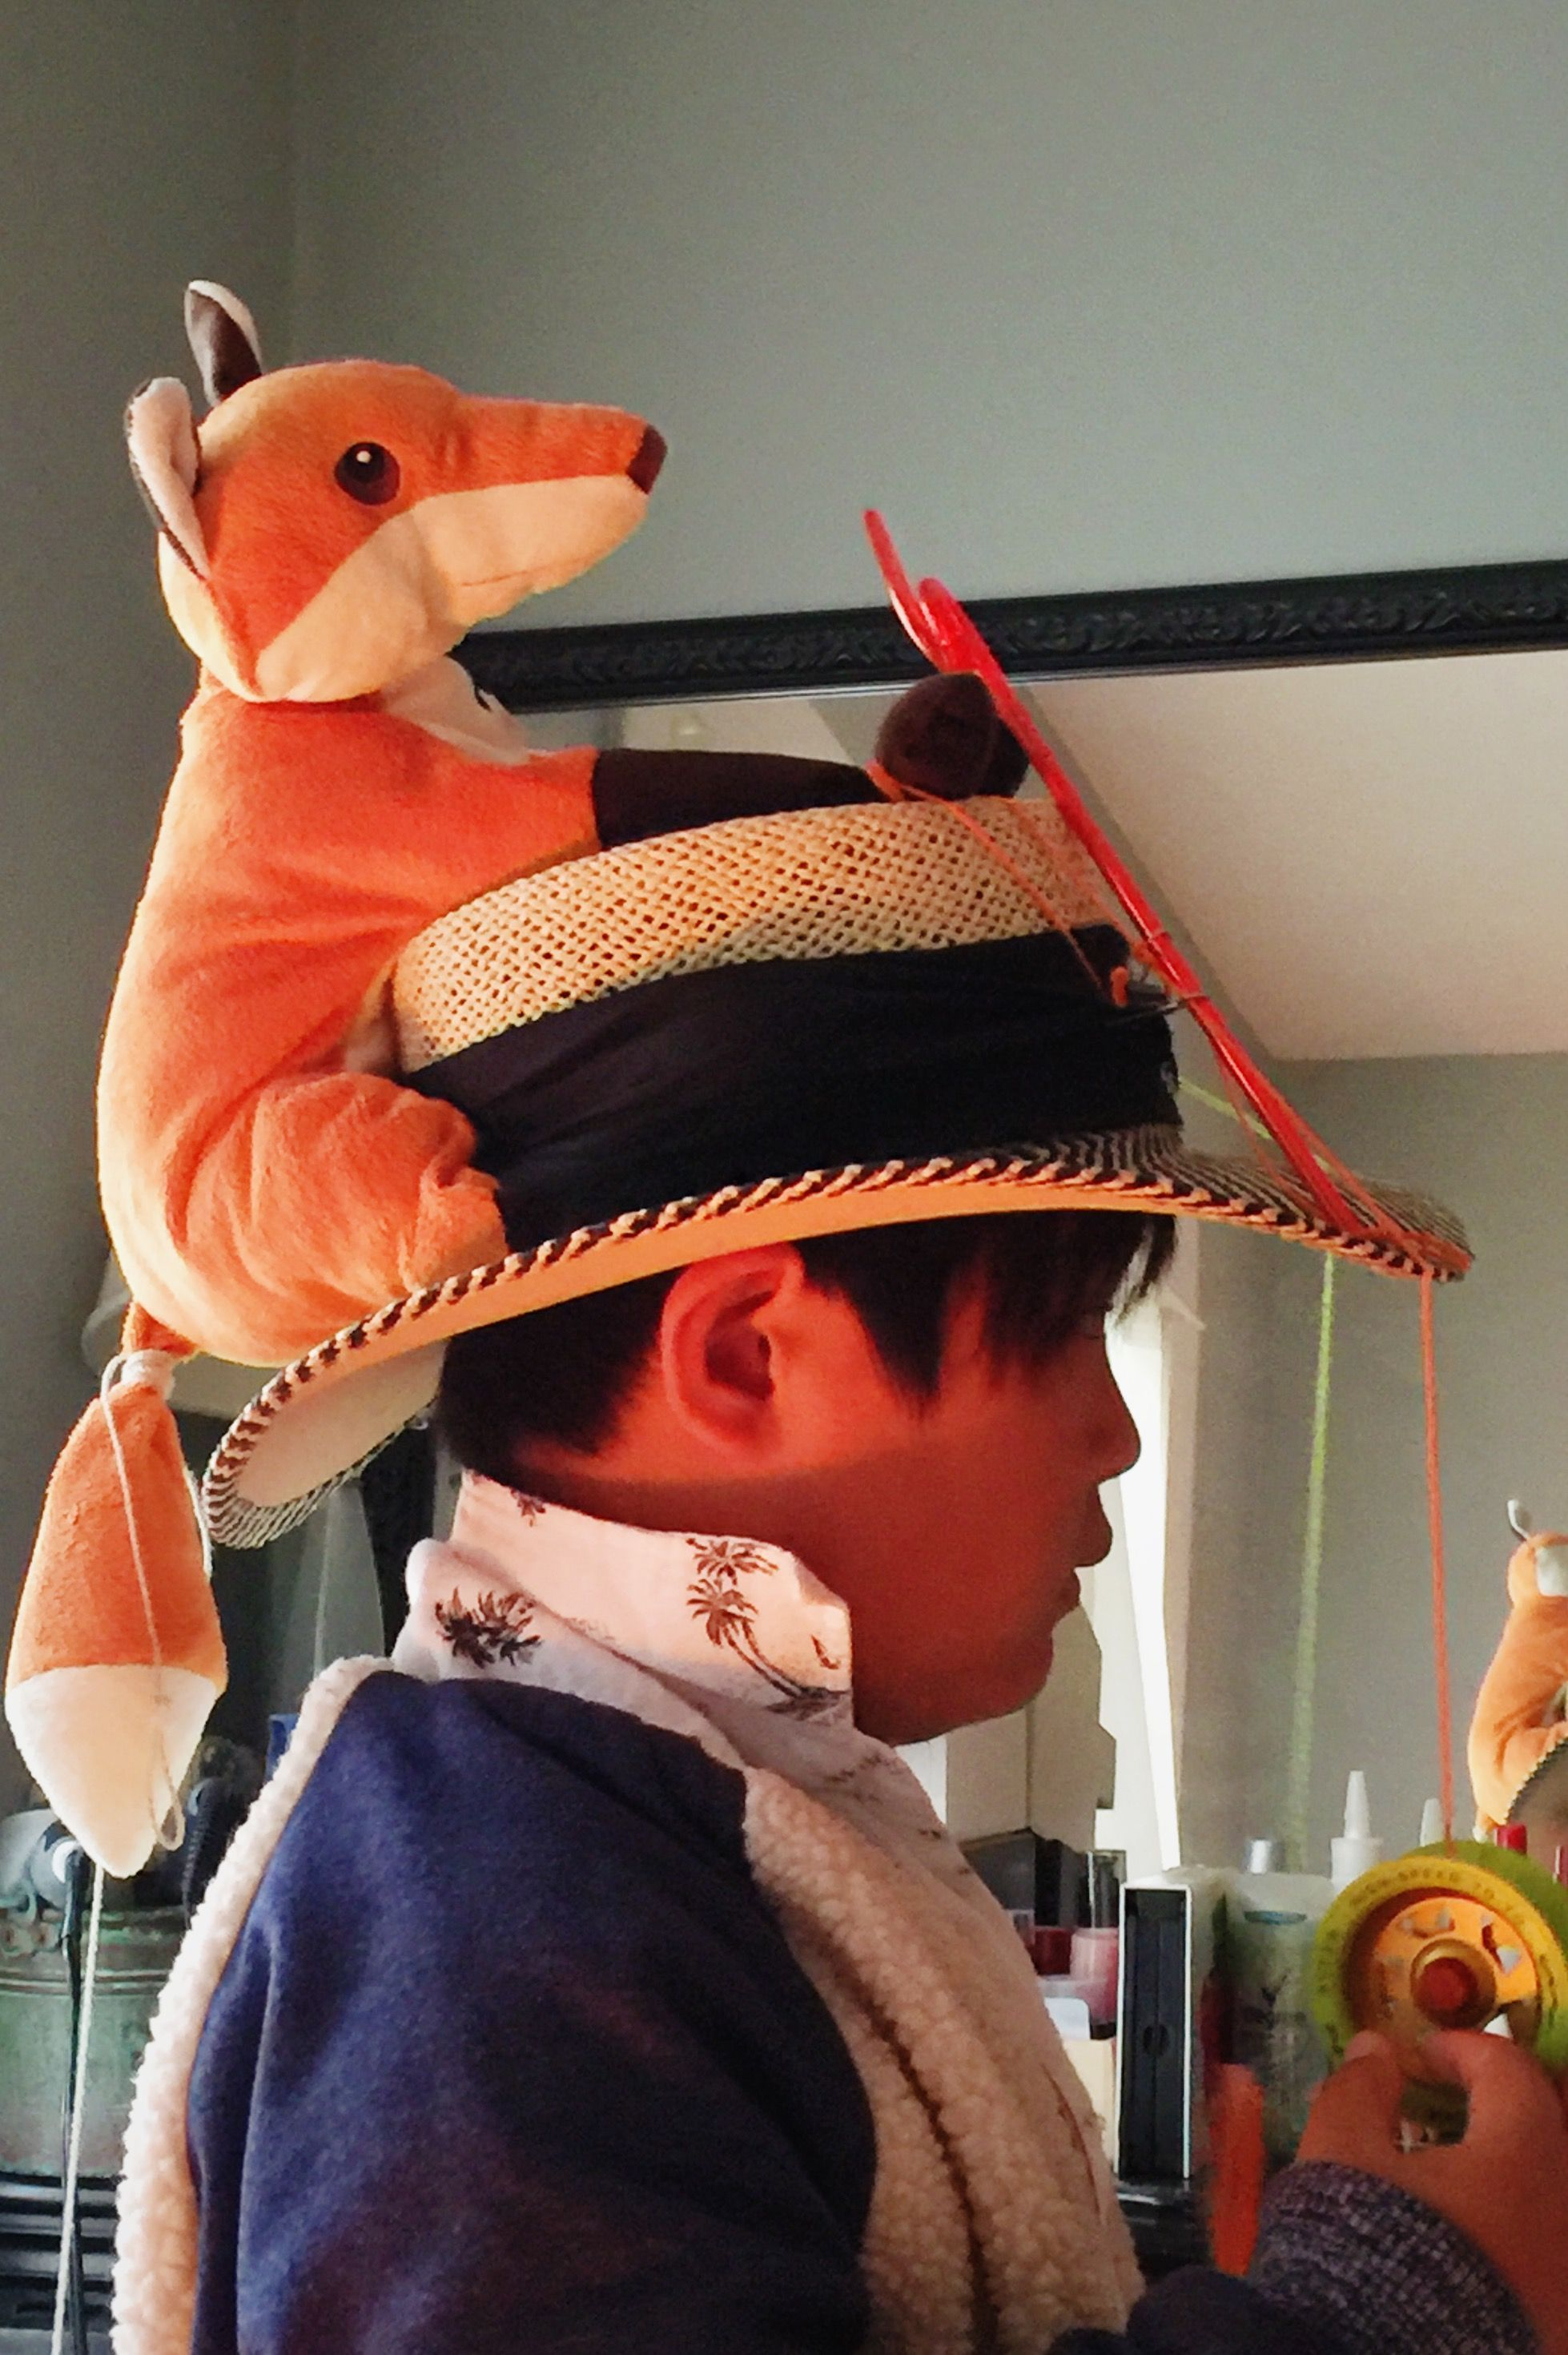 DIY crazy hat day idea. Interesting concept, but I am more amazed that he wore that to school... what's not to love? #crazyhatdayideas DIY crazy hat day idea. Interesting concept, but I am more amazed that he wore that to school... what's not to love? #crazyhatdayideas DIY crazy hat day idea. Interesting concept, but I am more amazed that he wore that to school... what's not to love? #crazyhatdayideas DIY crazy hat day idea. Interesting concept, but I am more amazed that he wore that to school.. #crazyhatdayideas